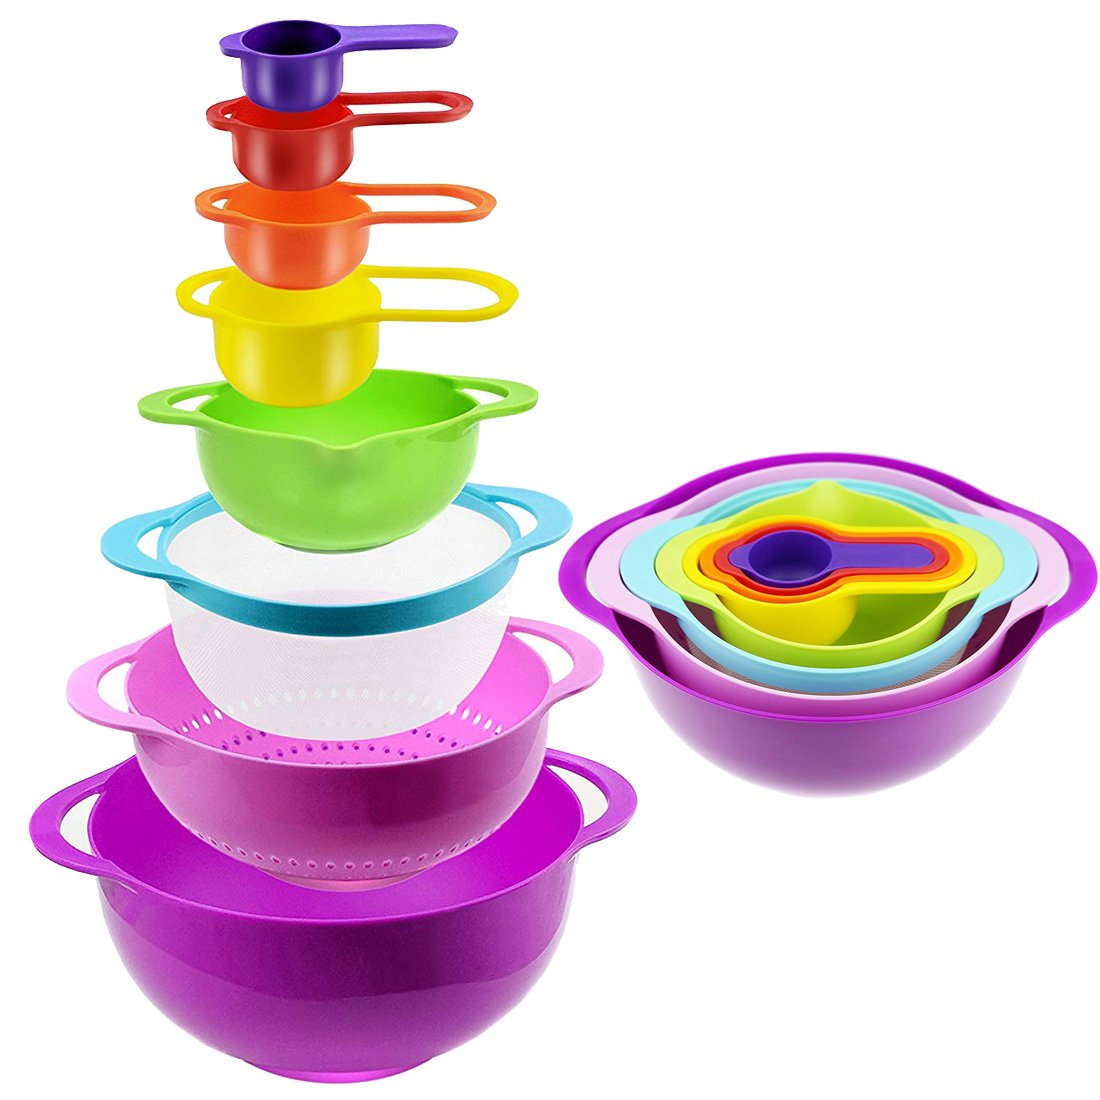 8 pc Color Compact Food Prep Nesting Mixing Bowl Set Plastic - with Non Slip Bowls, Colander, Sieve and Measuring Cups Stackable Kitchen Dishwasher Safe Salad, Cake and Bakery, Vegetable, Fruit